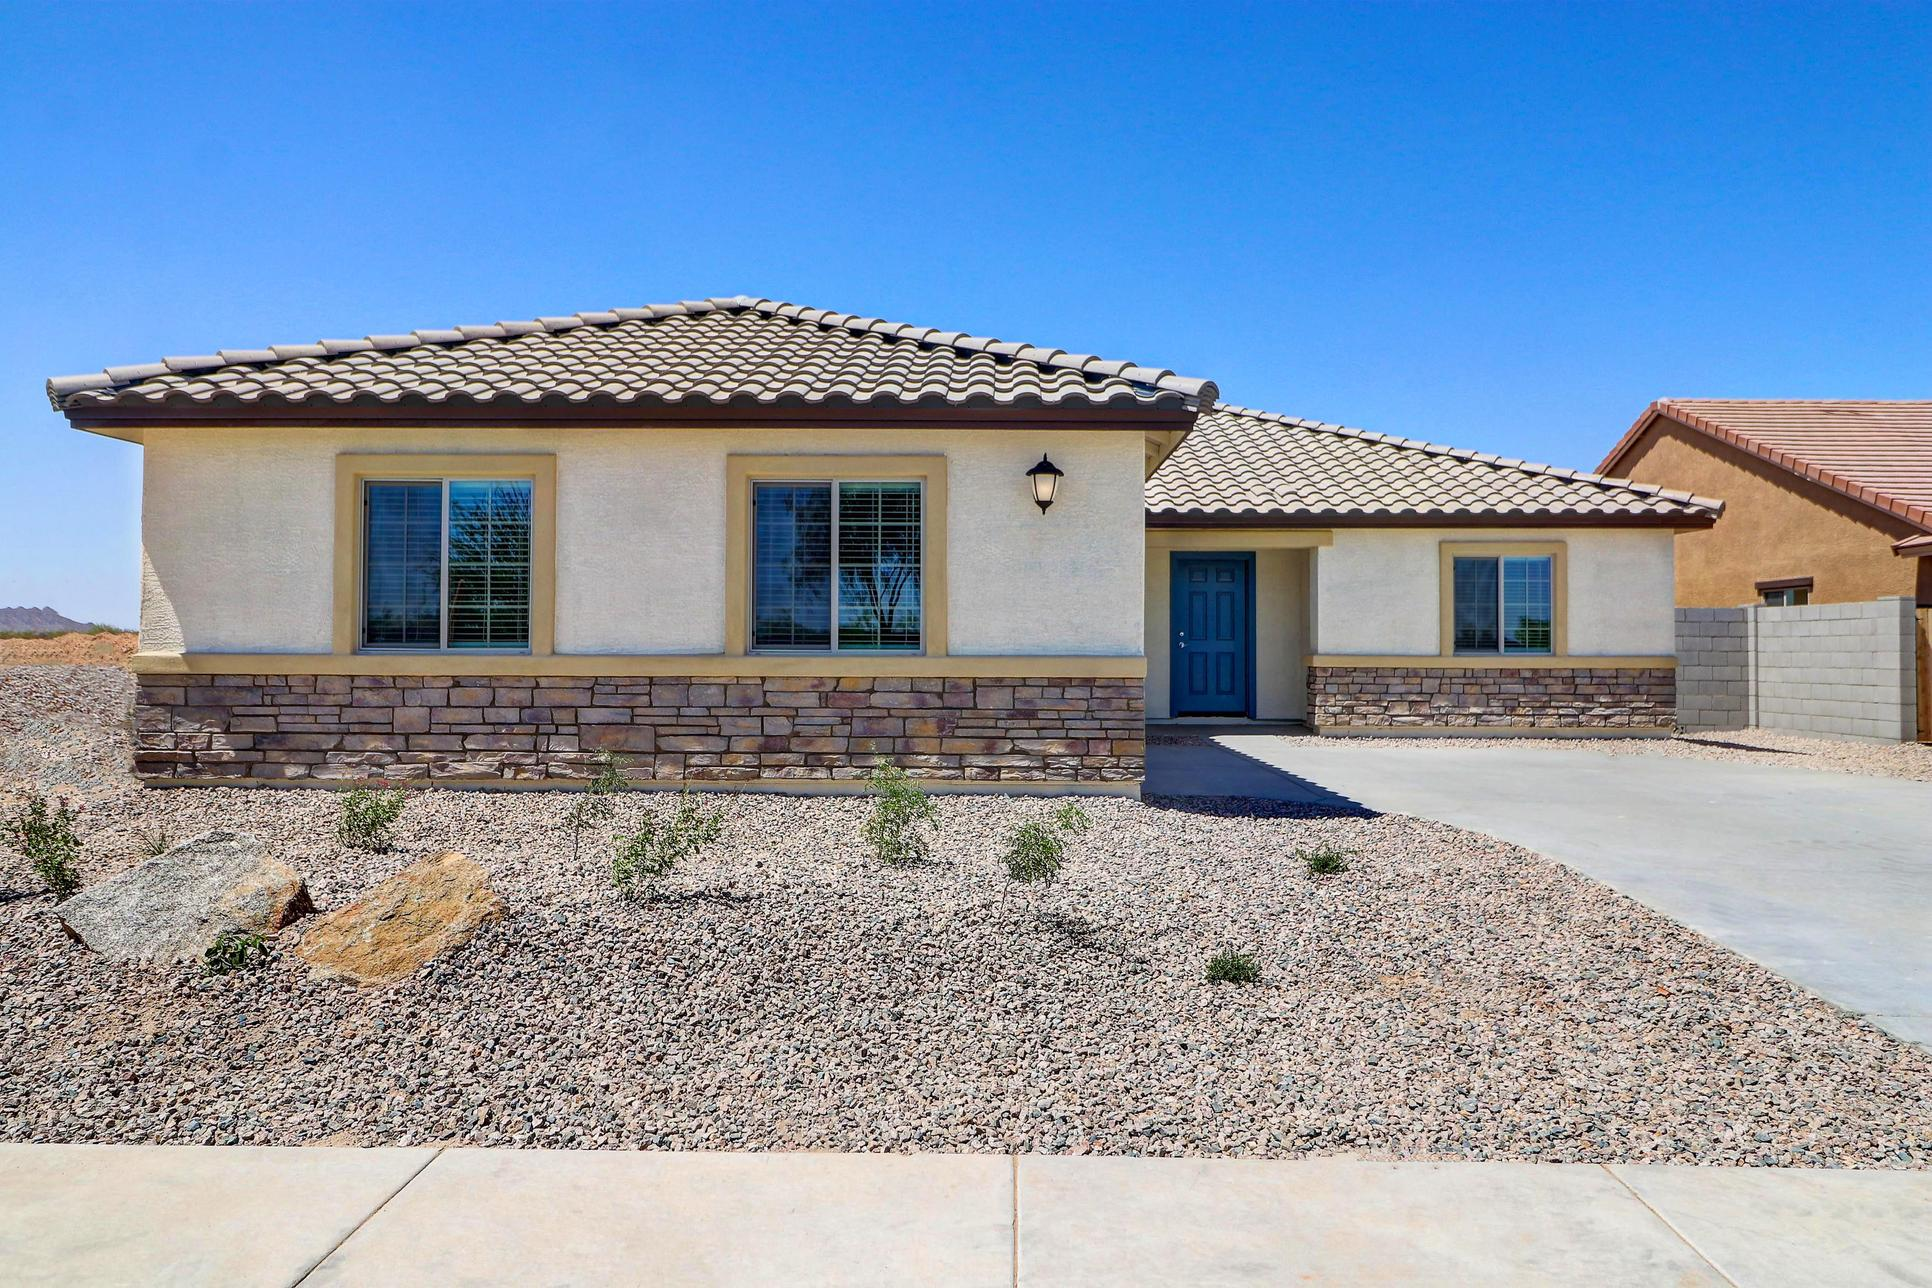 The Guadalupe by LGI Homes:Charming exterior with great curb appeal